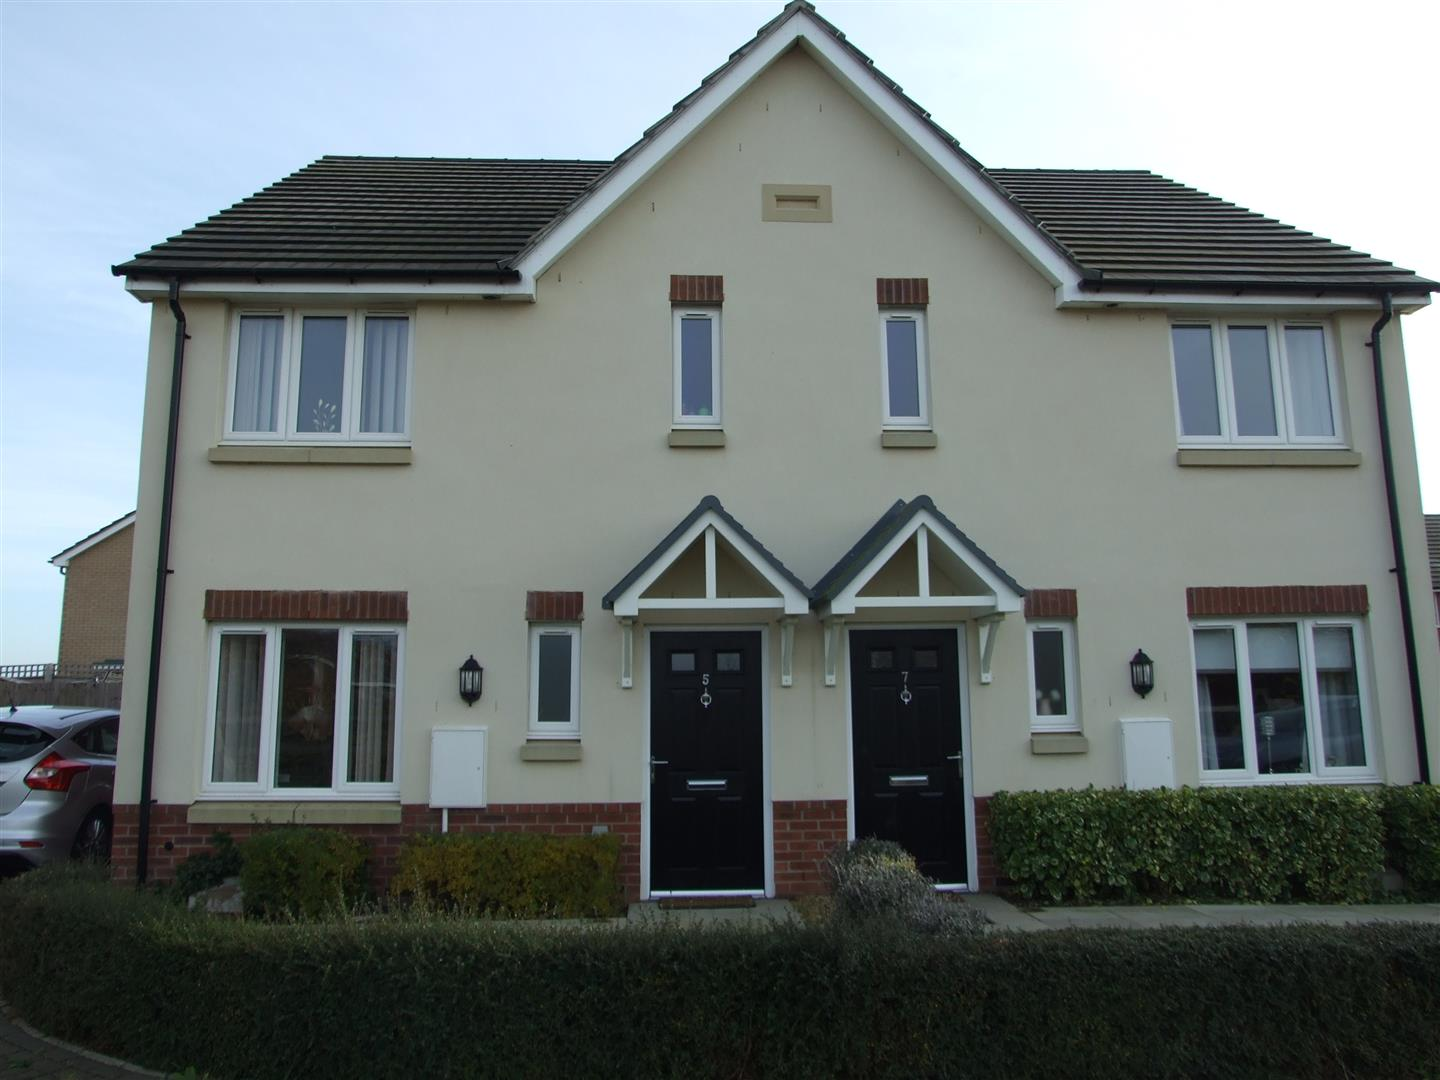 3 bed house to rent in Long Sutton, PE12 9GZ 6